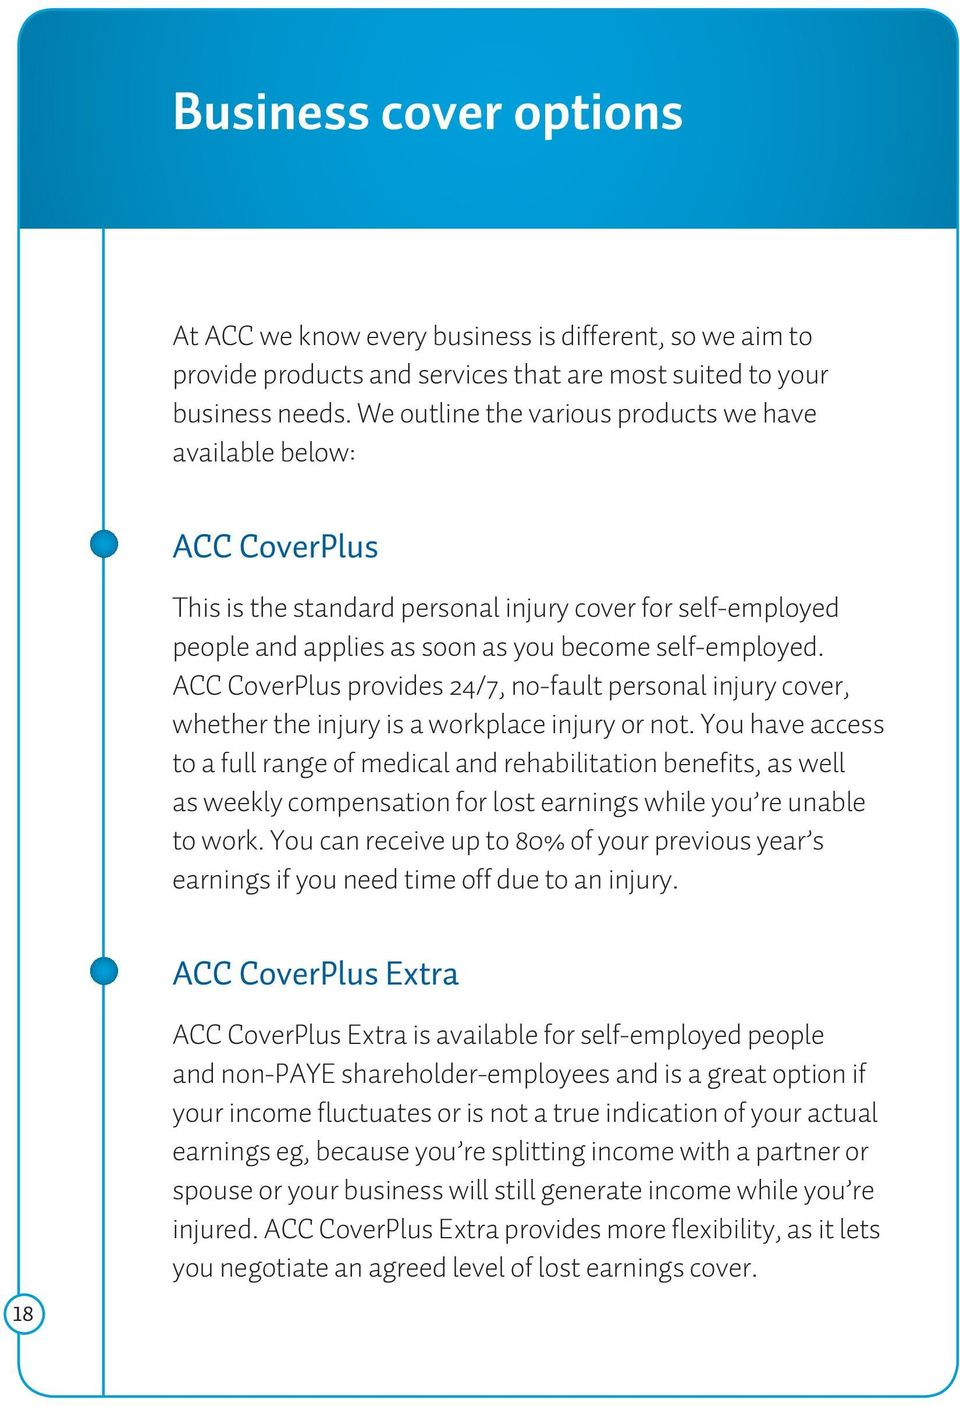 ACC CoverPlus provides 24/7, no-fault personal injury cover, whether the injury is a workplace injury or not.